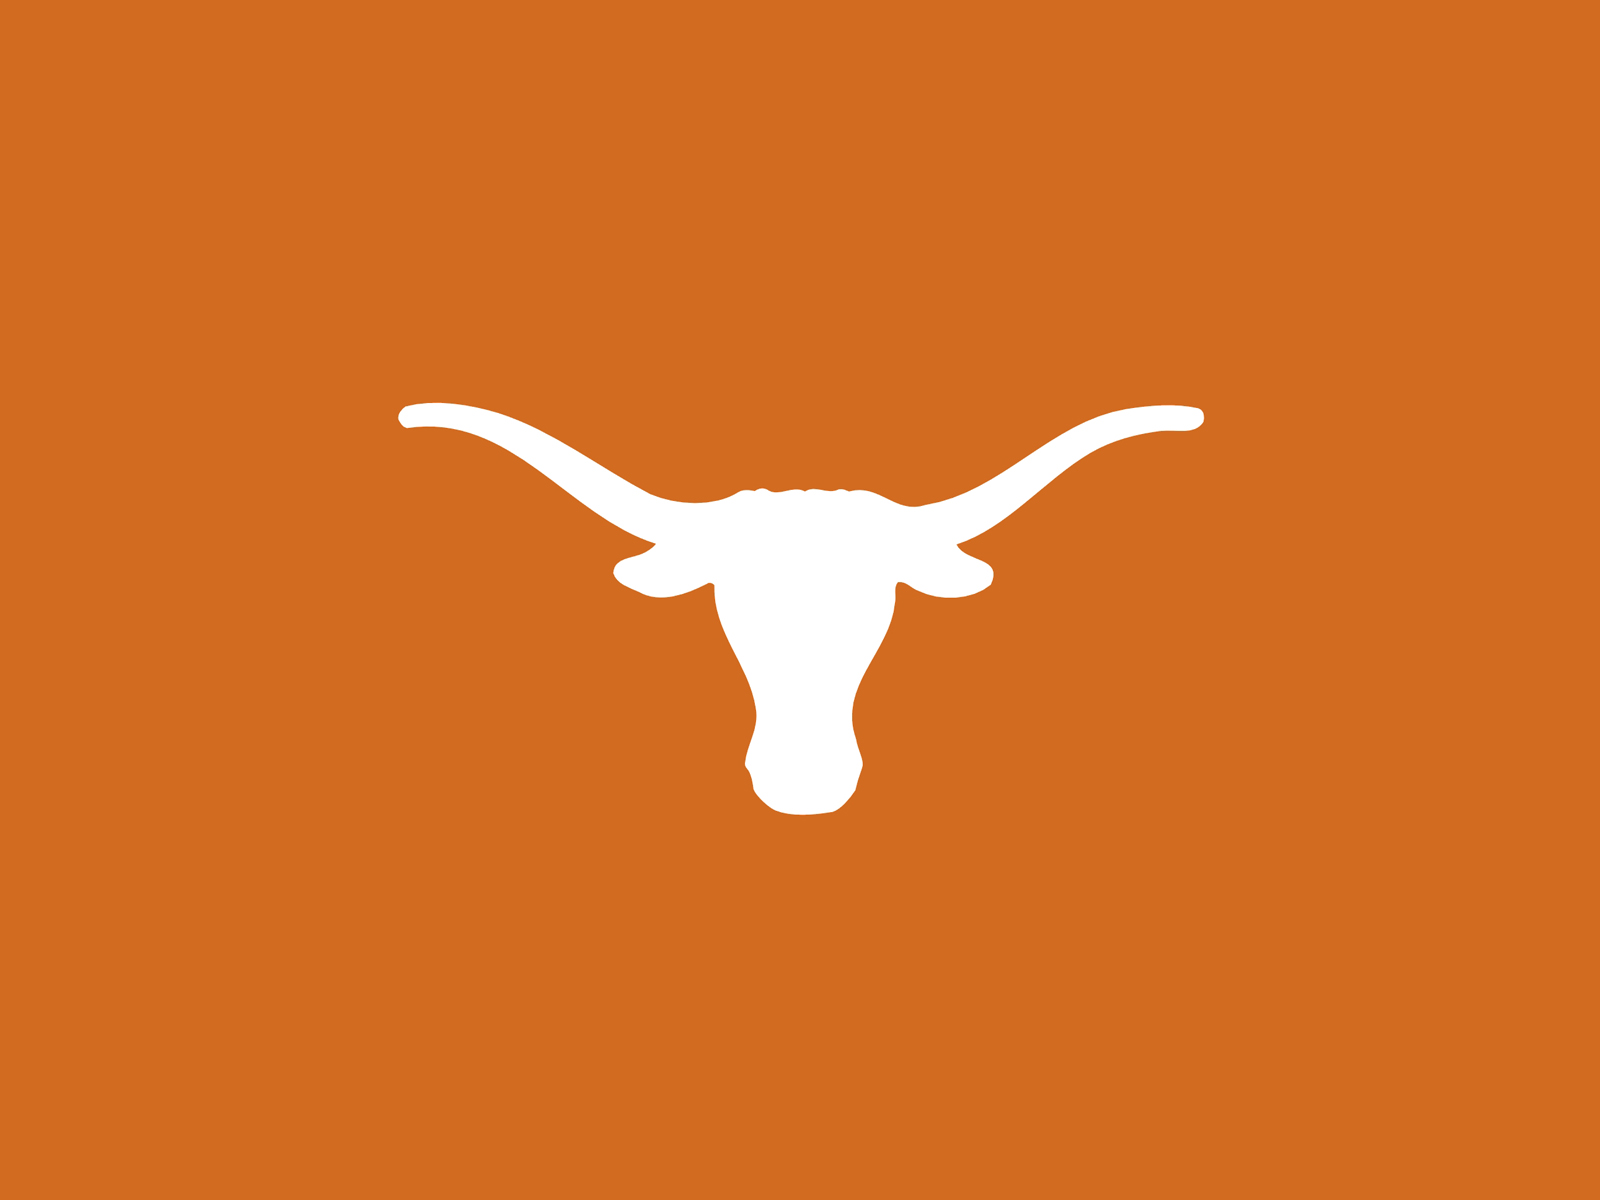 HD wallpapers archived wallpaper 1080p Texas Football Wallpapers 1600x1200